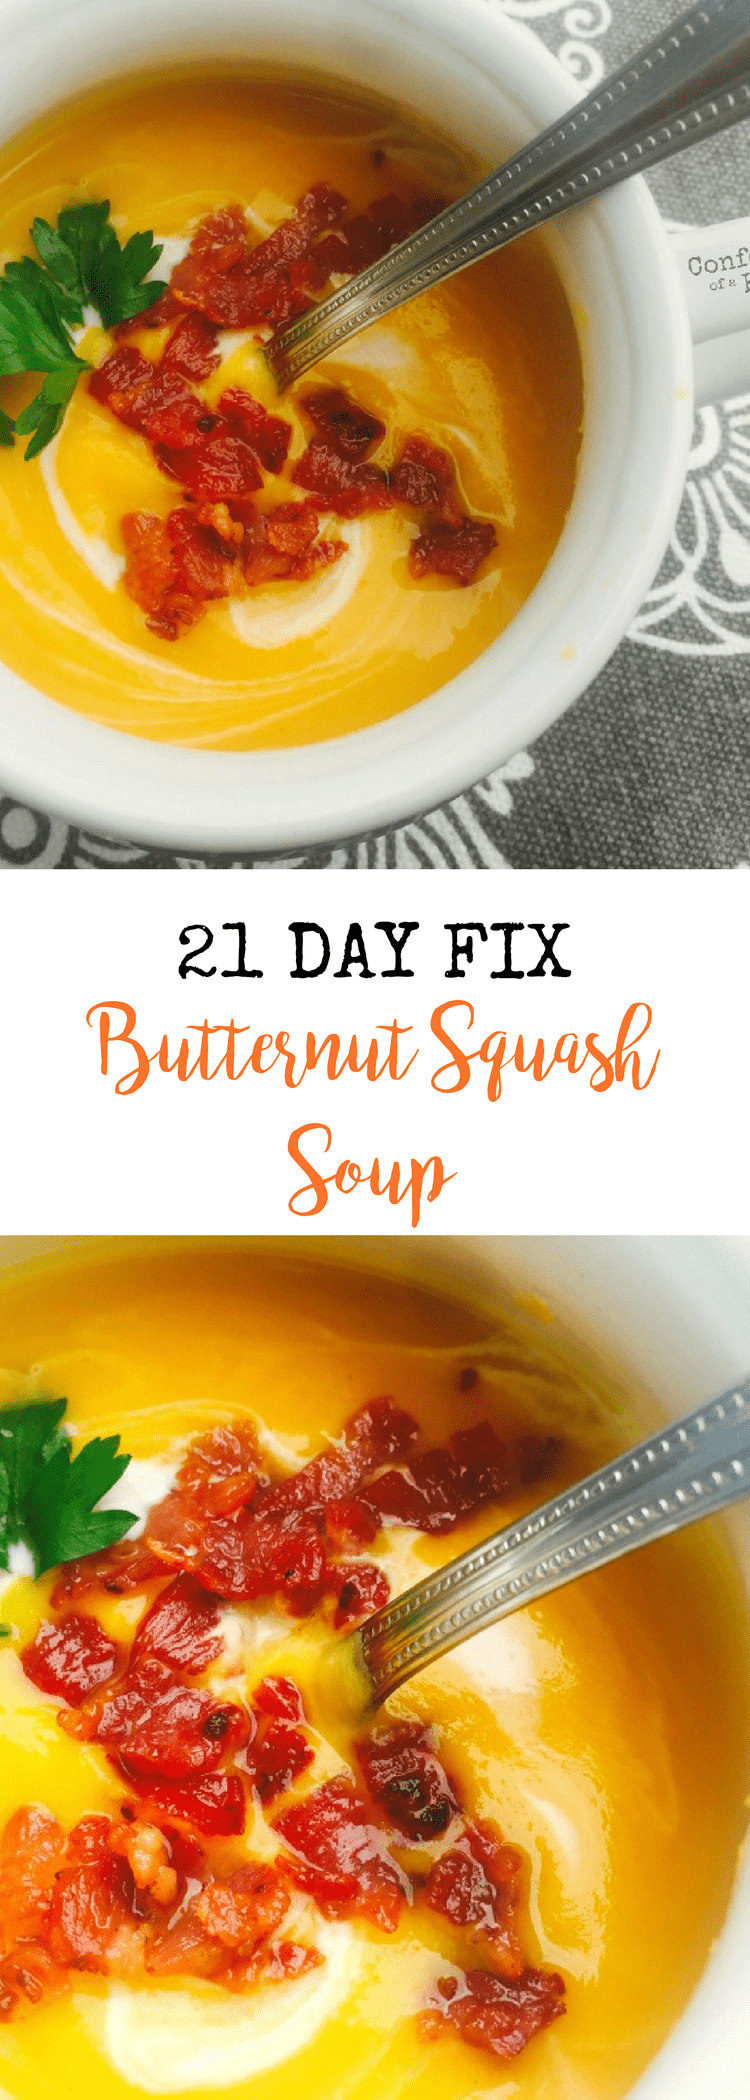 21 Day Fix Butternut Squash Soup {Dairy-free and Gluten-free} | Confessions of a Fit Foodie